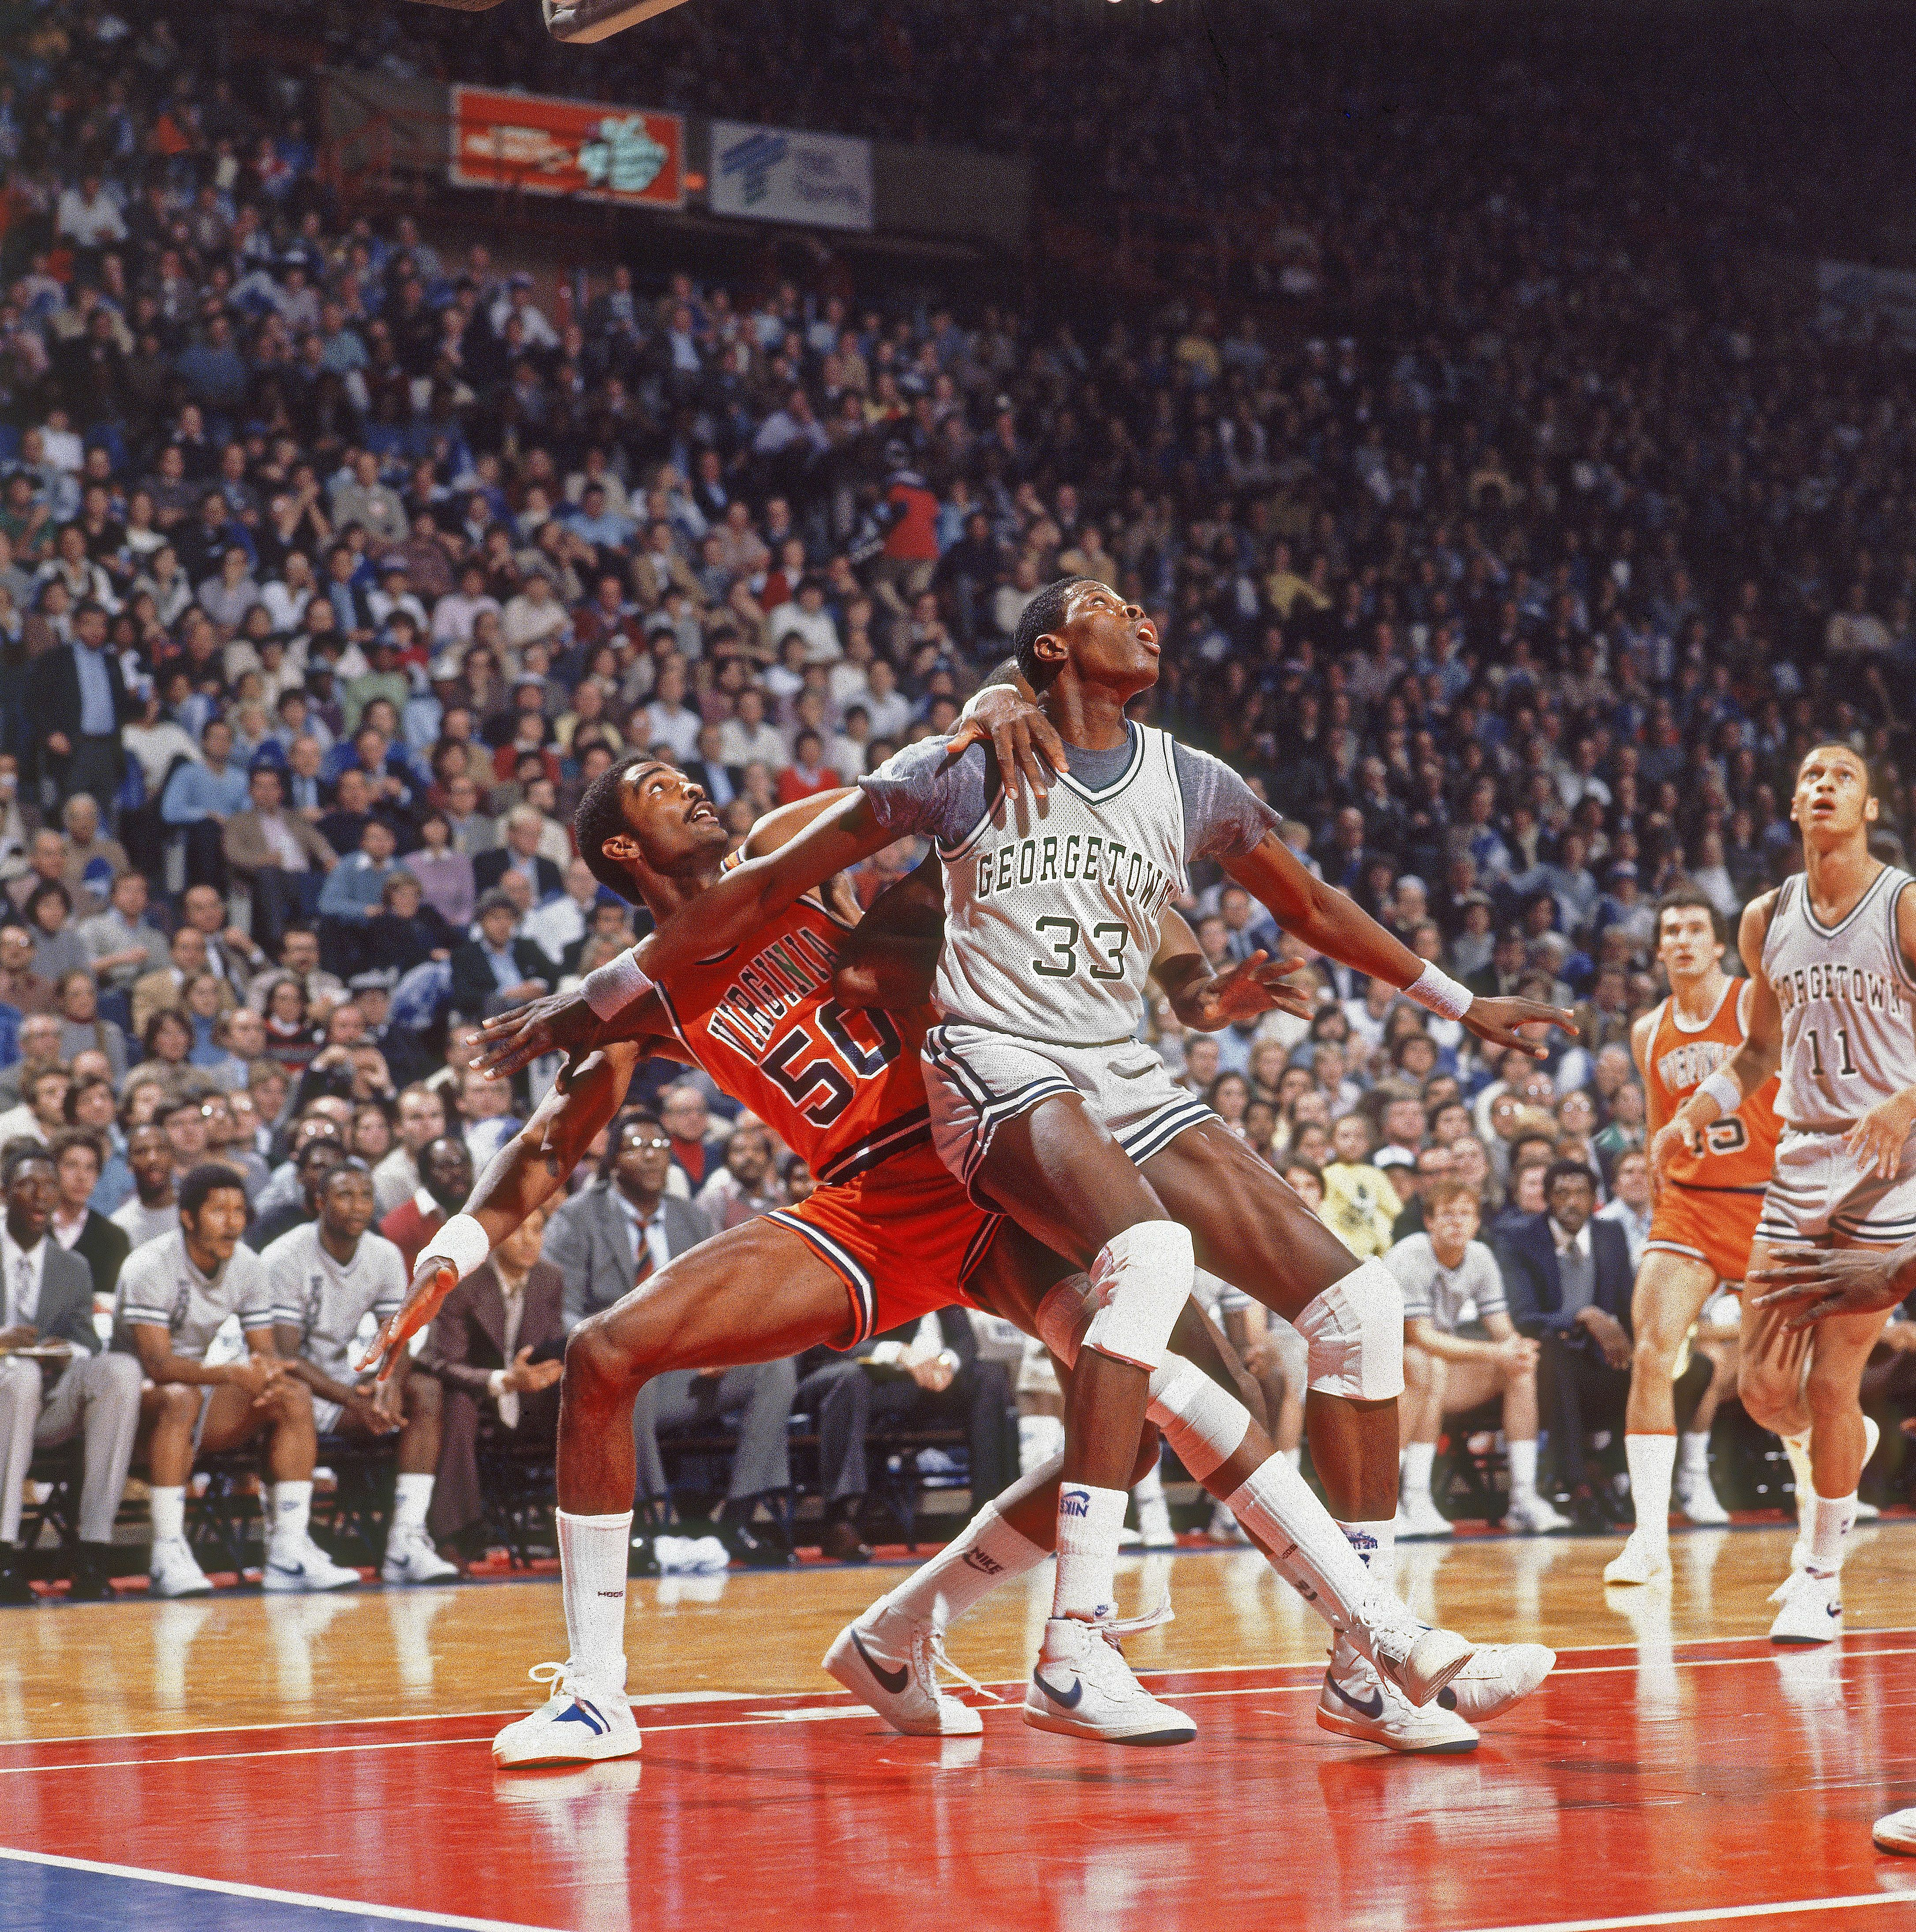 Ralph Sampson Virginia vs Patrick Ewing Geor own